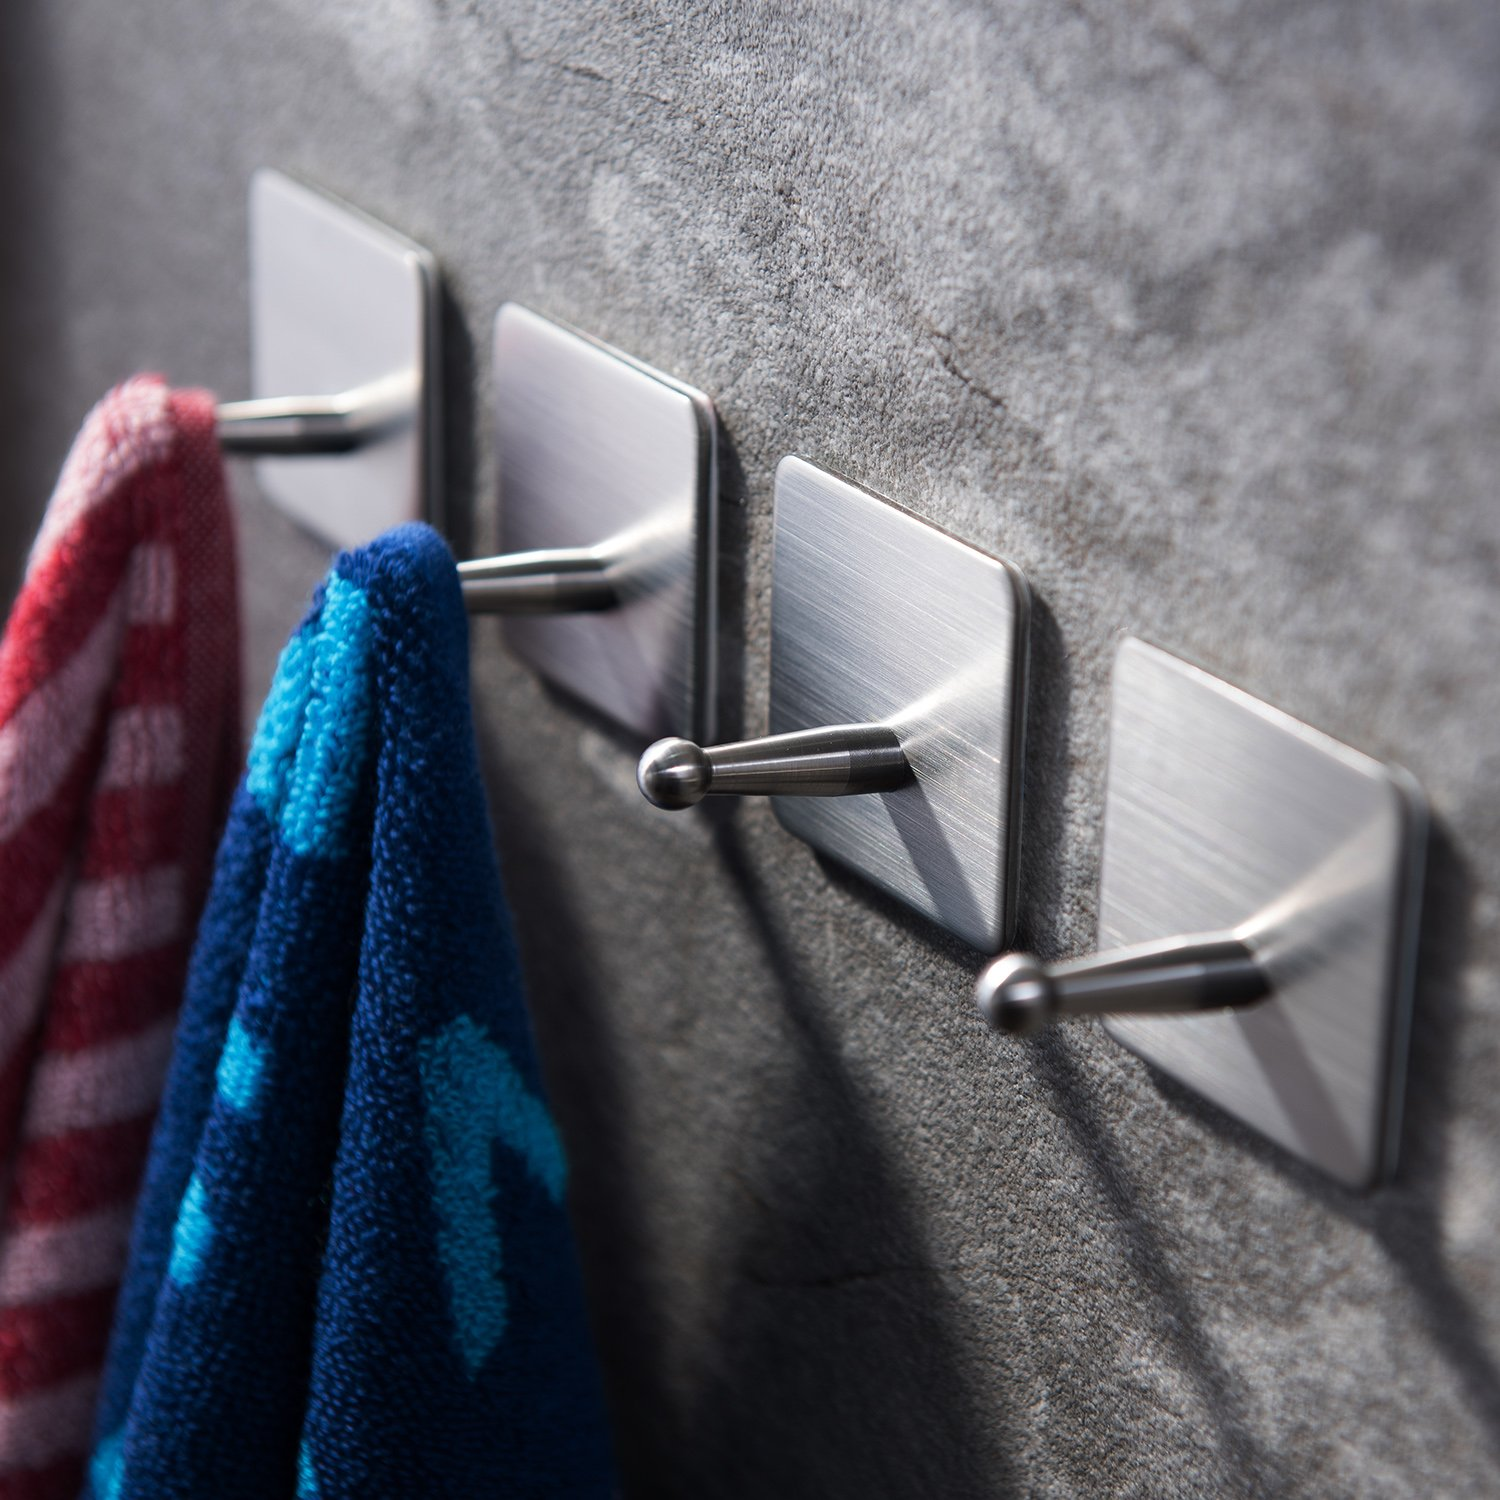 Taozun 3M Self Adhesive Hooks Rack 3-hooks Towel Hooks Bath Coat Robe Hooks Bathroom Kitchen Hooks Hand Dish Key Stick on Wall SUS 304 Stainless Steel